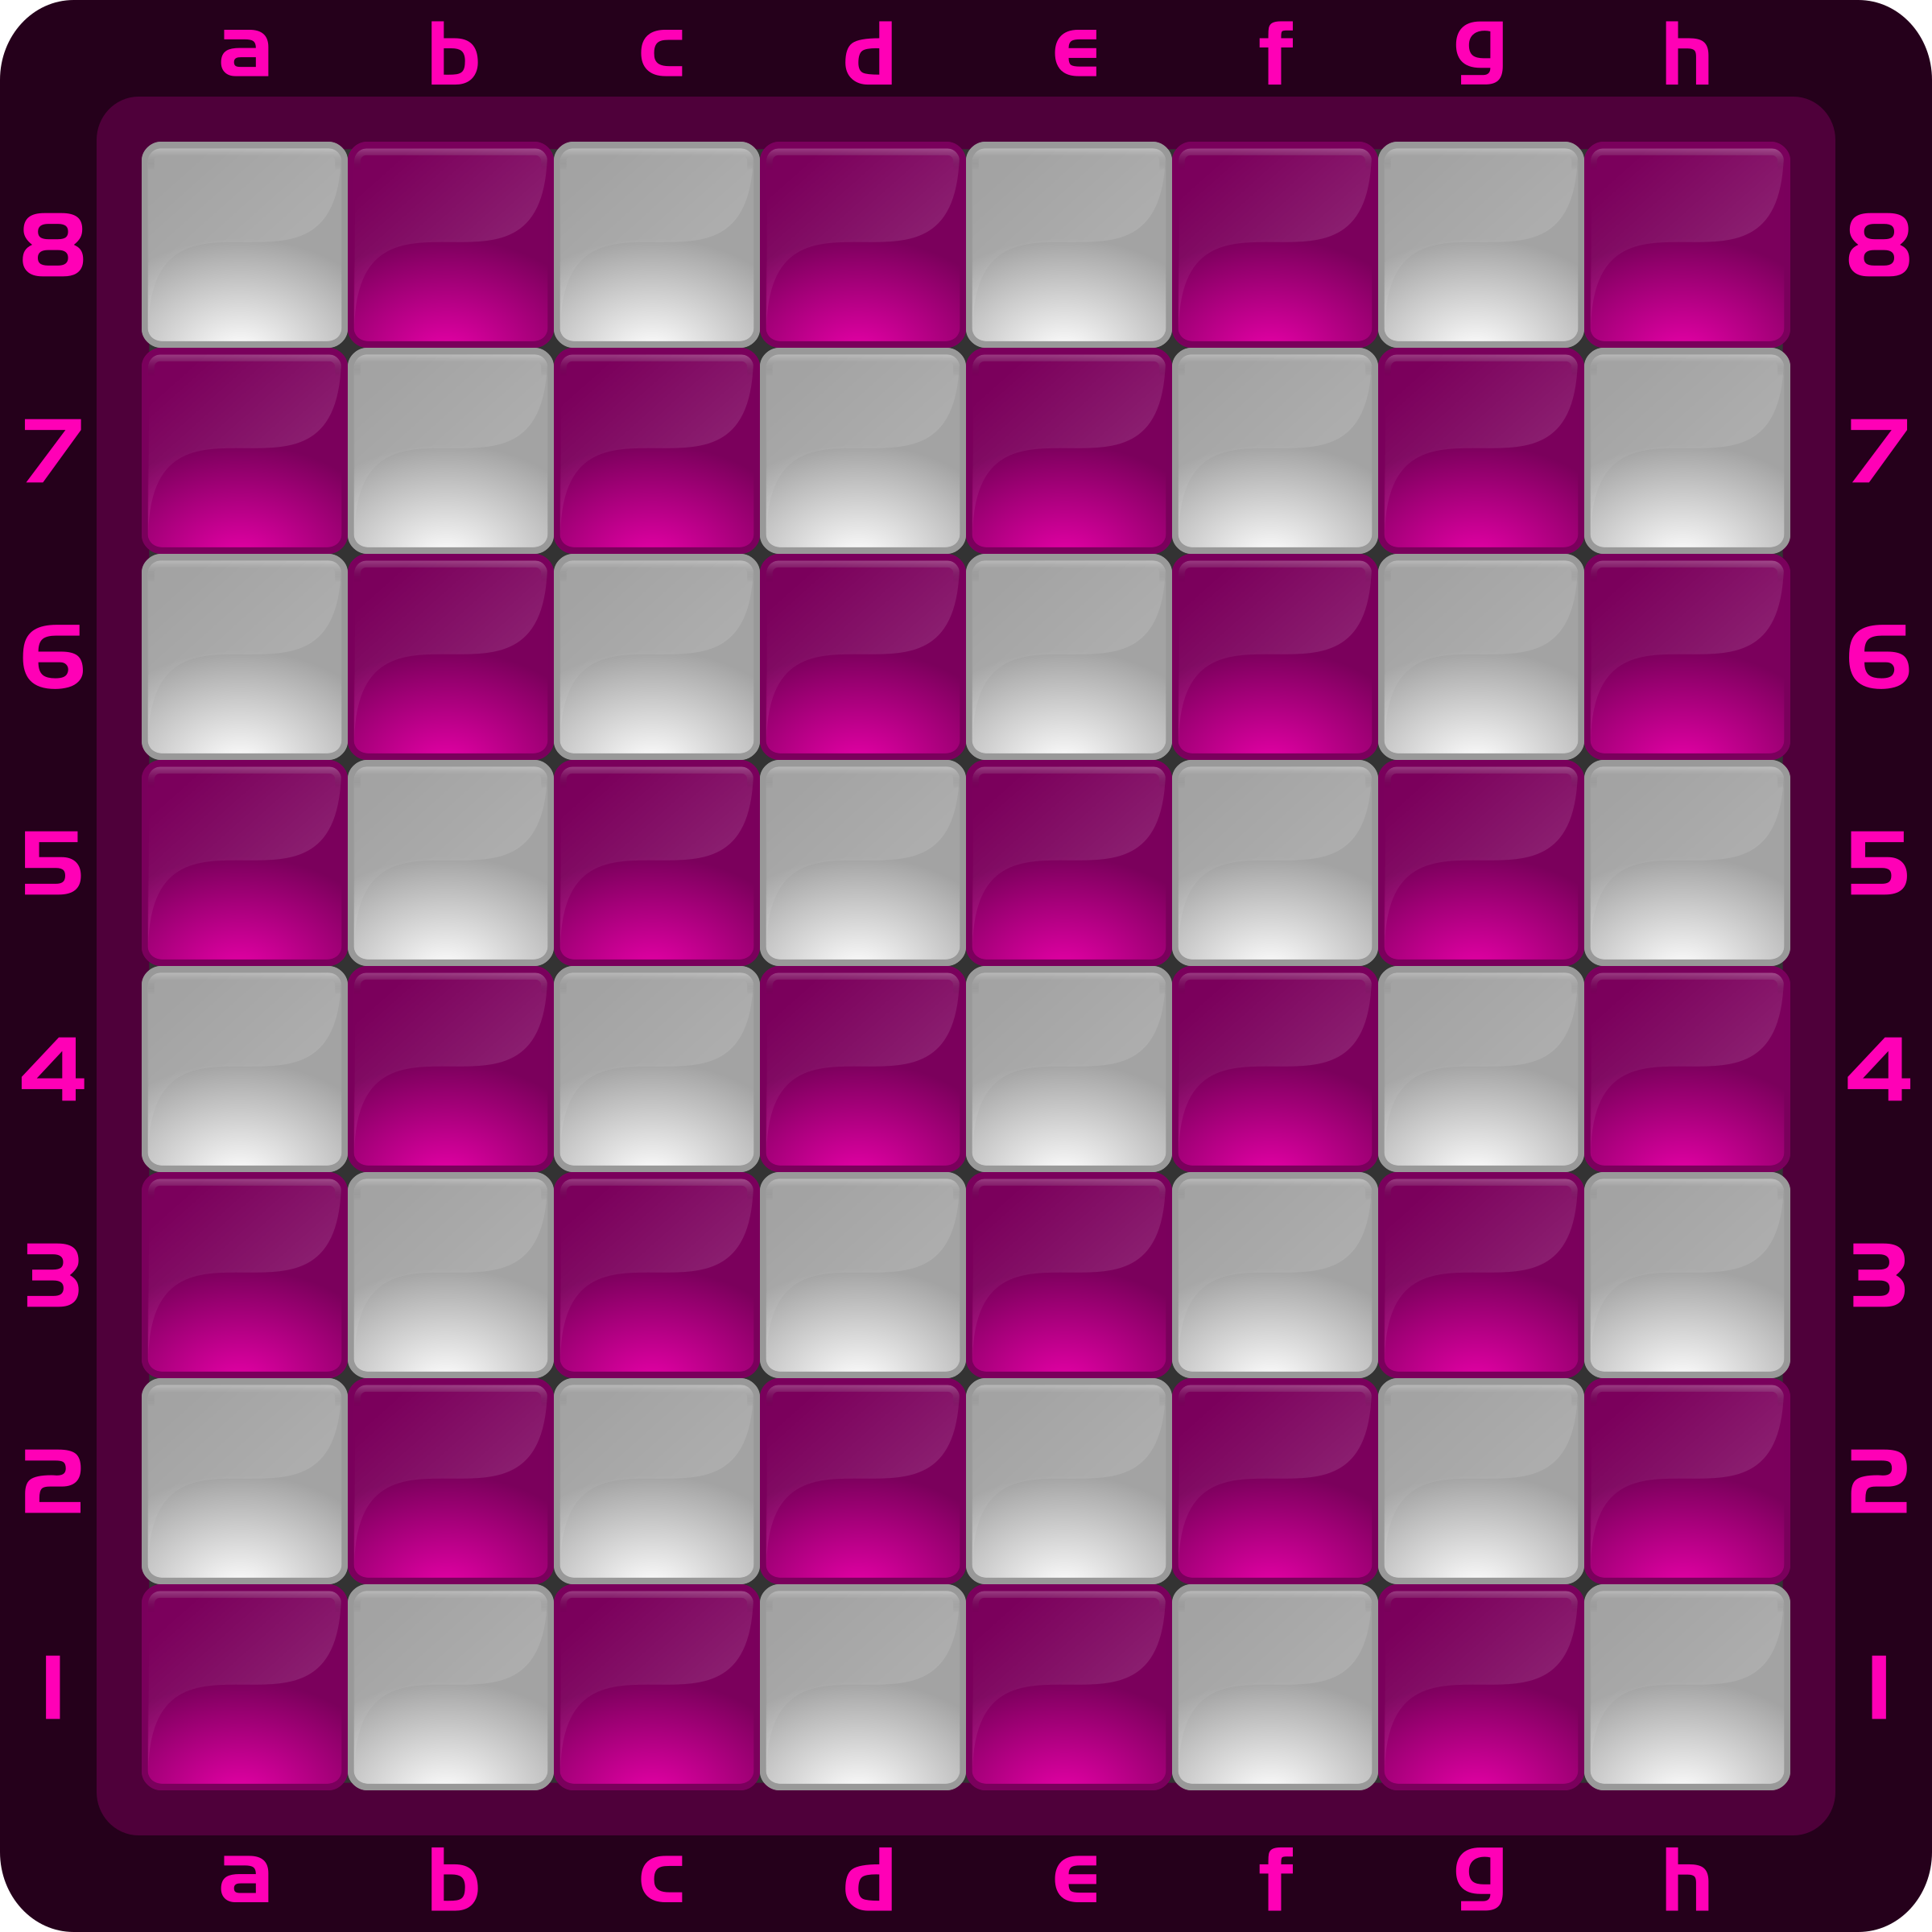 Chessboard Glossy Squares - fuchsia by DG-RA